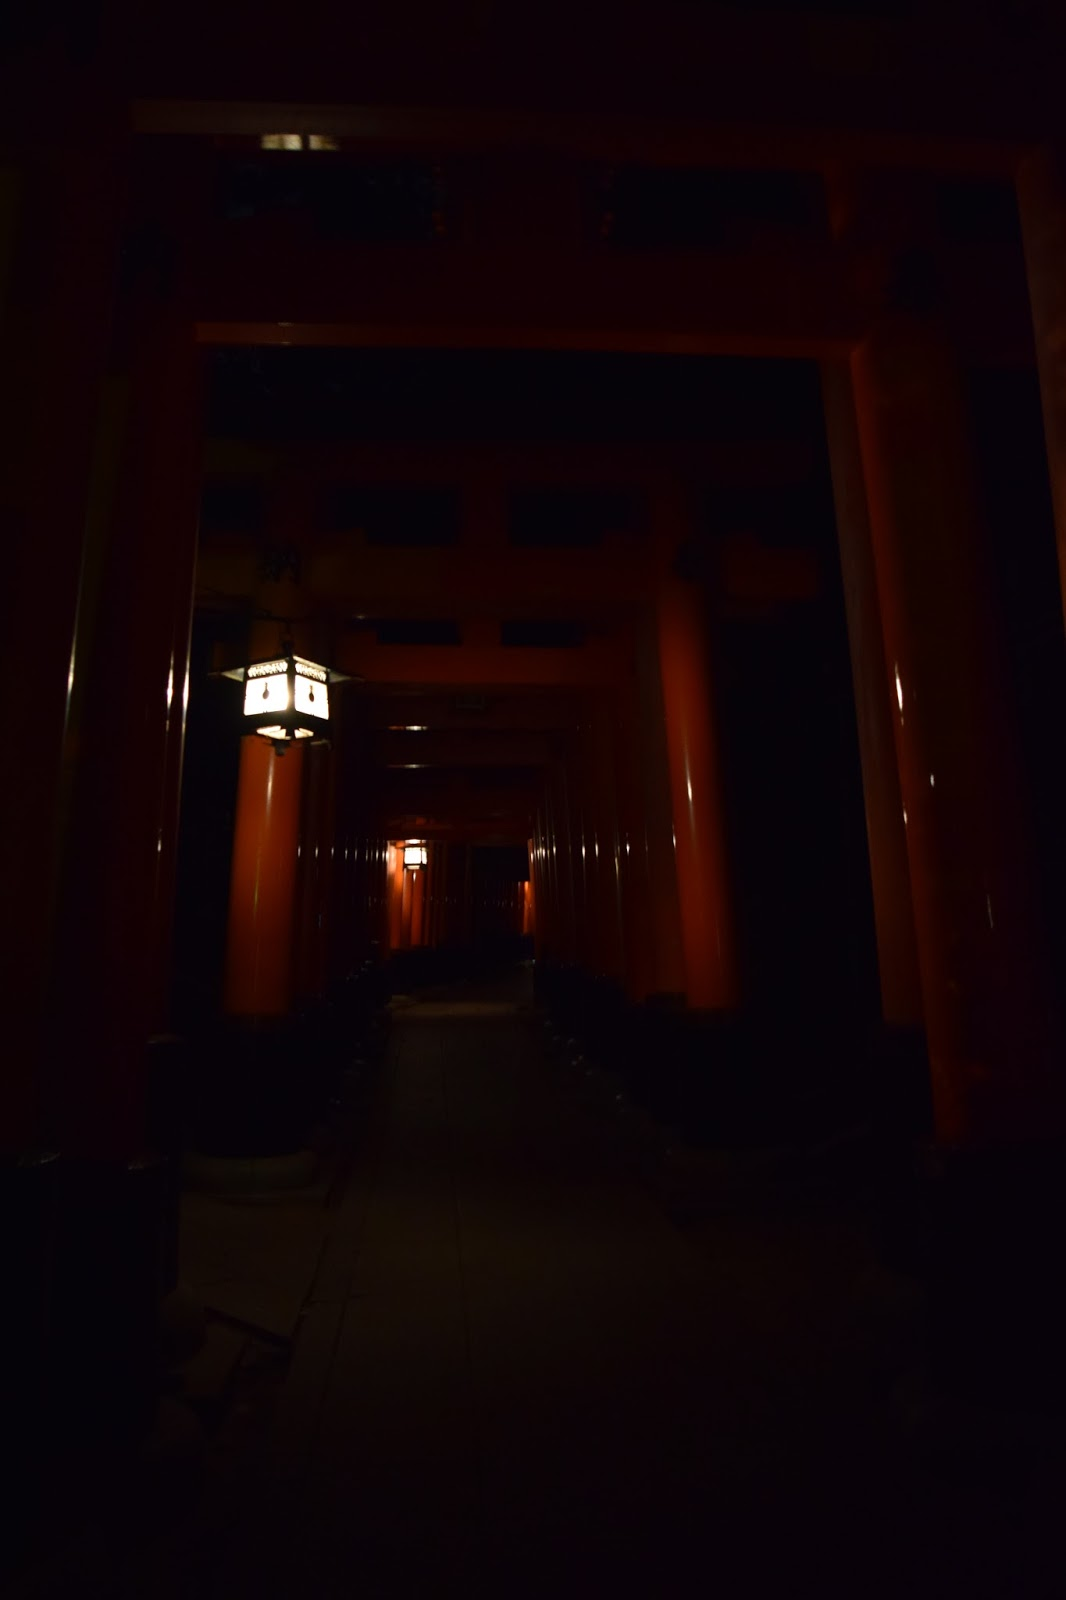 Fushimi Inari Taisha after dark